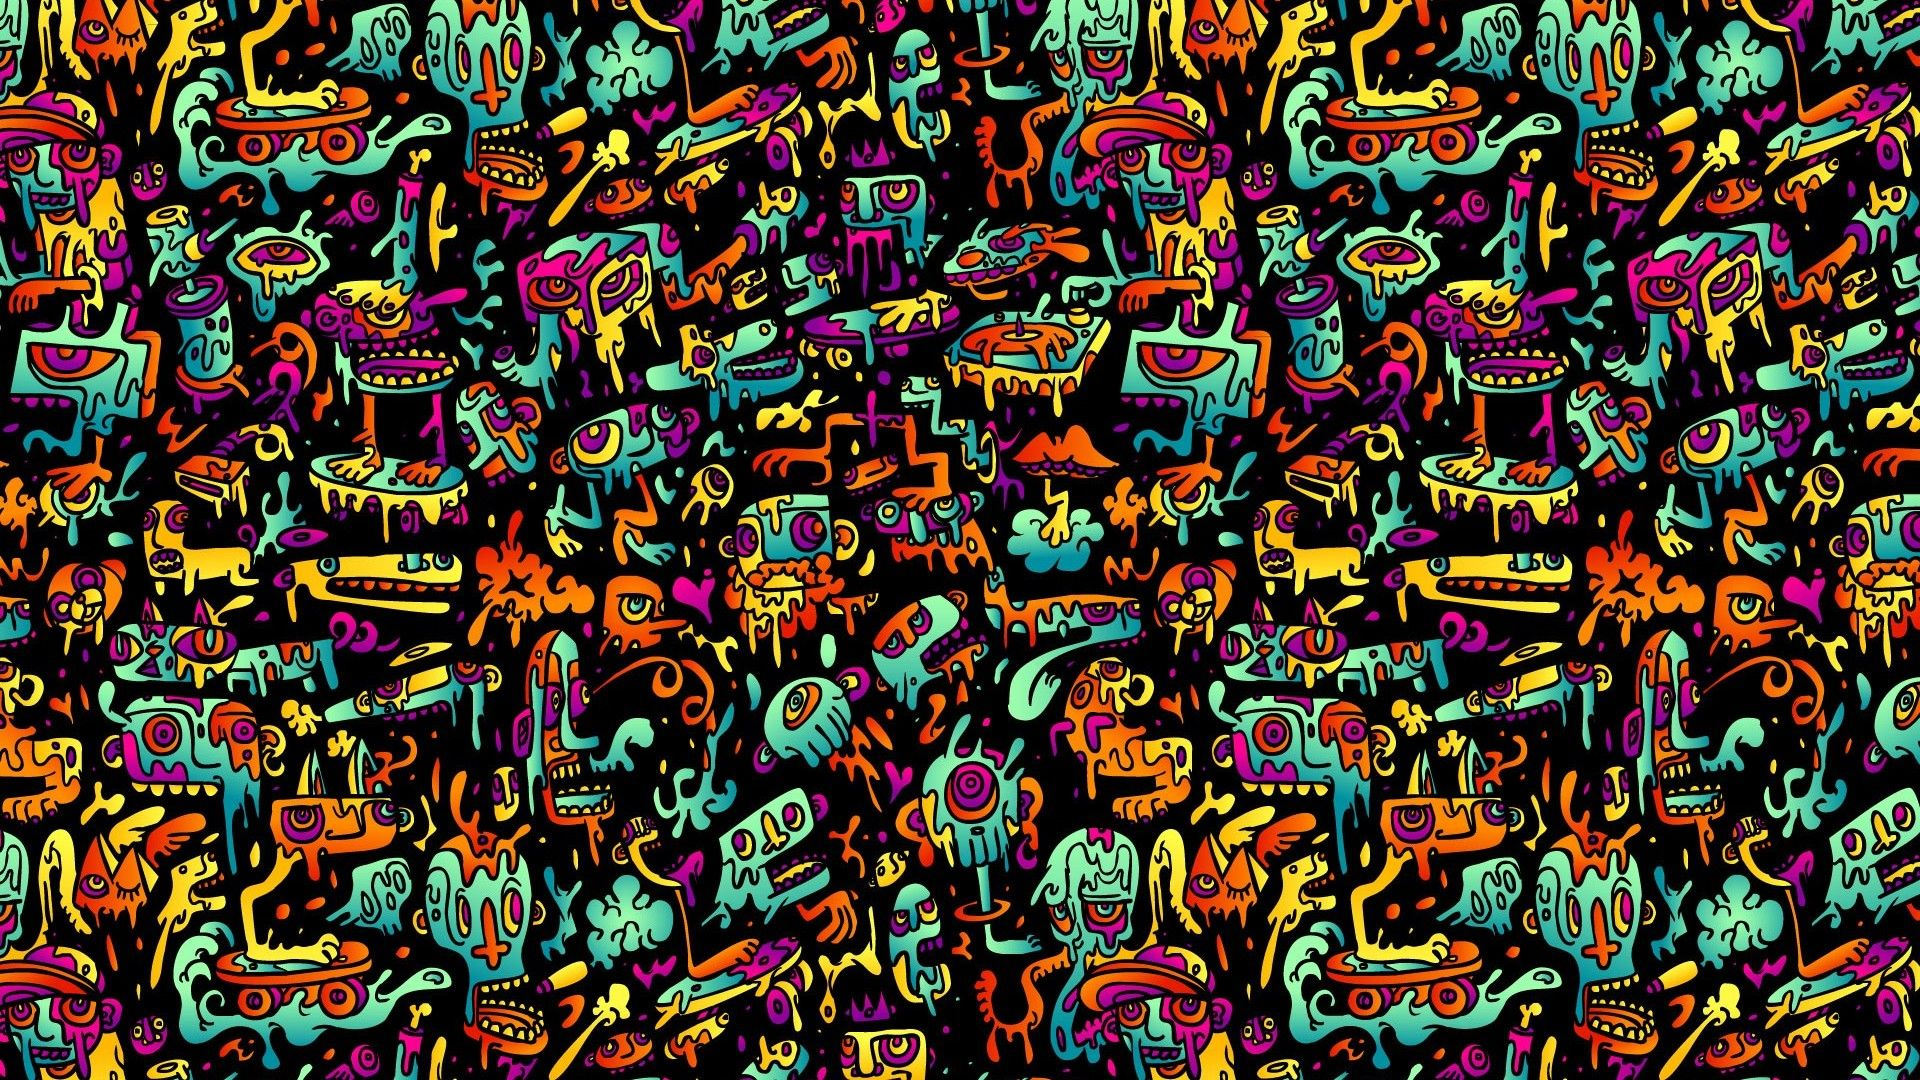 Psychedelic Wallpaper | Best HD Wallpapers | Wallpaperscute in 2019 | Abstract pictures ...